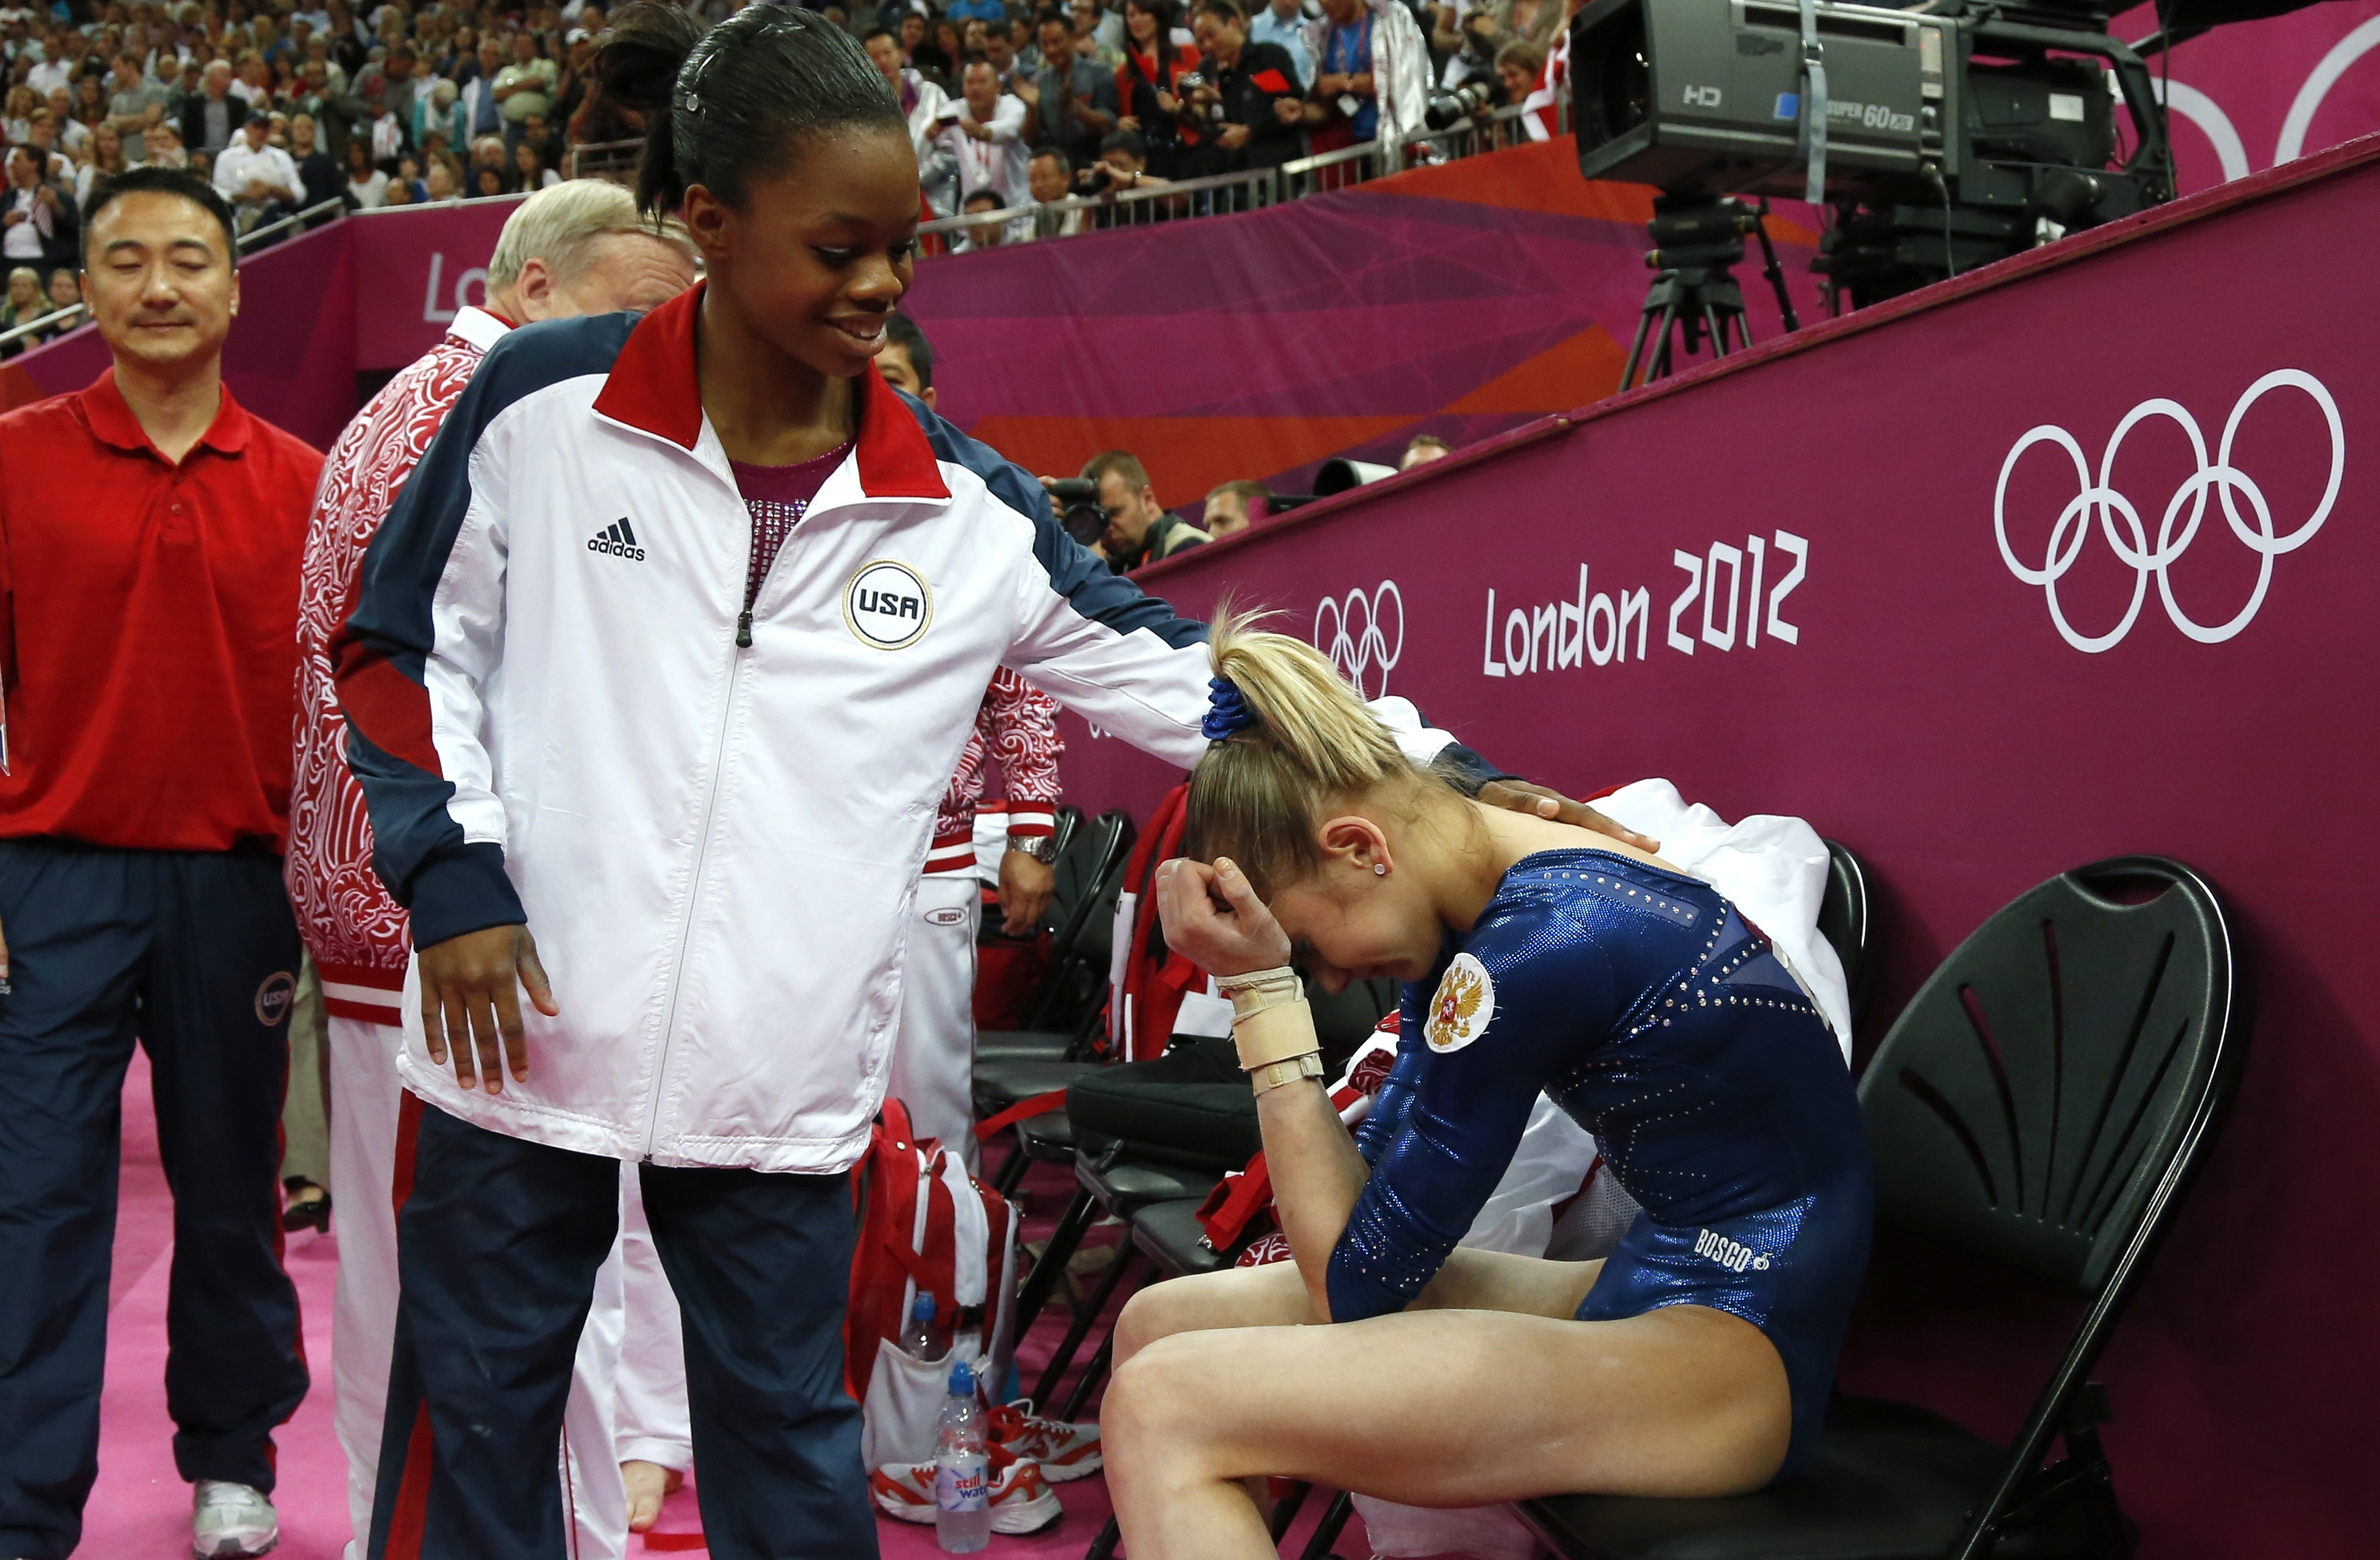 After Thursday's competition, American Gabby Douglas consoles silver medalist Victoria Komova of Russia.